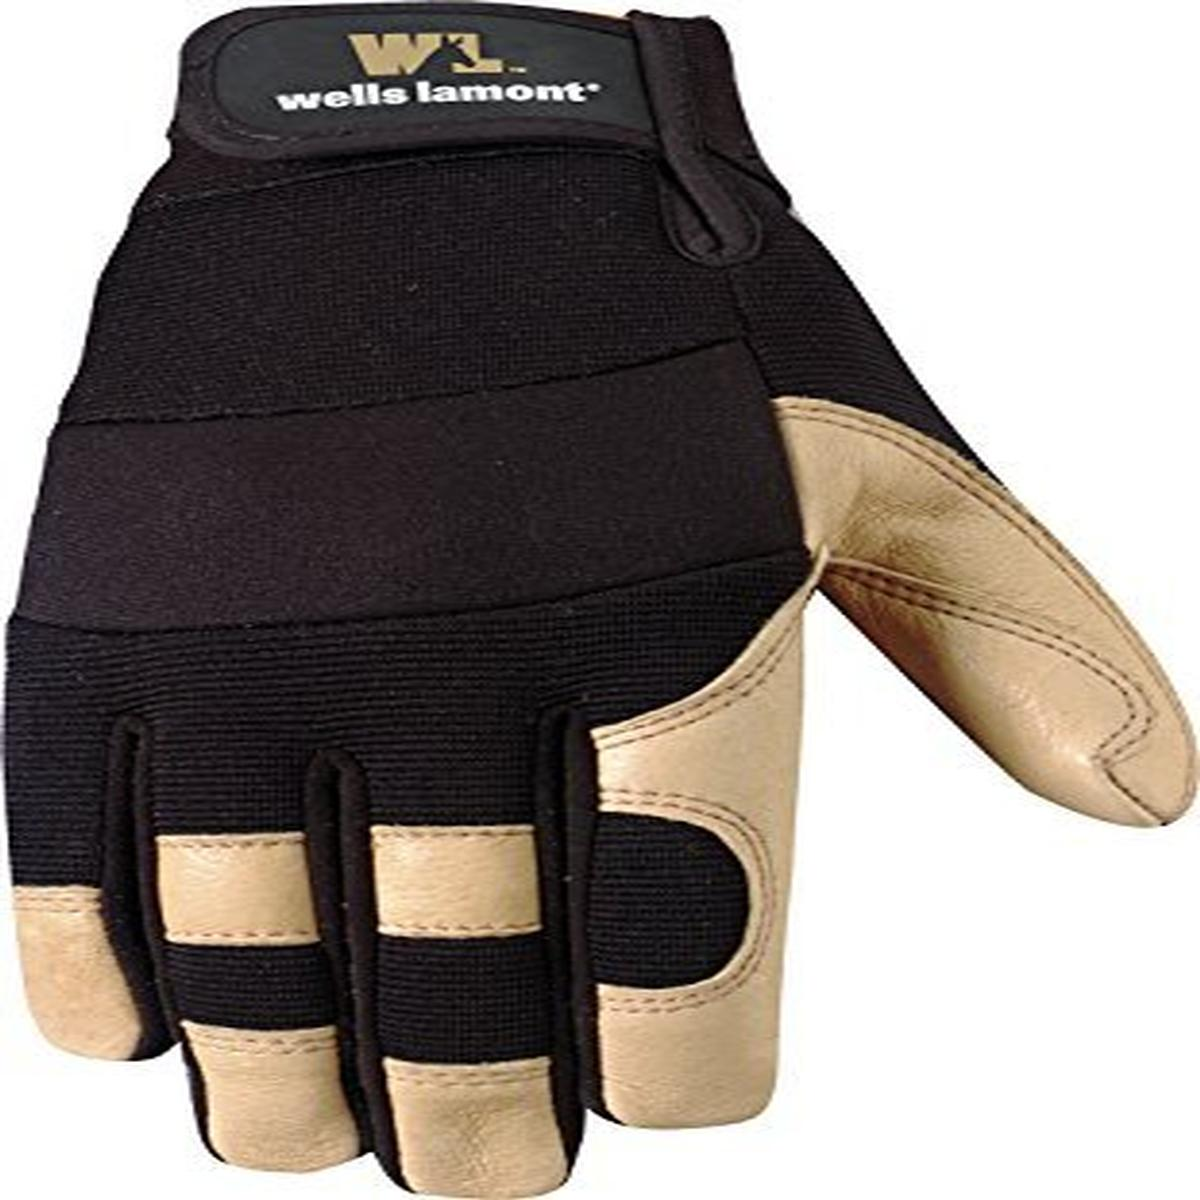 Wells Lamont Ultra Comfort Work Gloves, Grain Leather, Abrasive Resistant Palm, X-Large, Palomino/Black (3214XL)